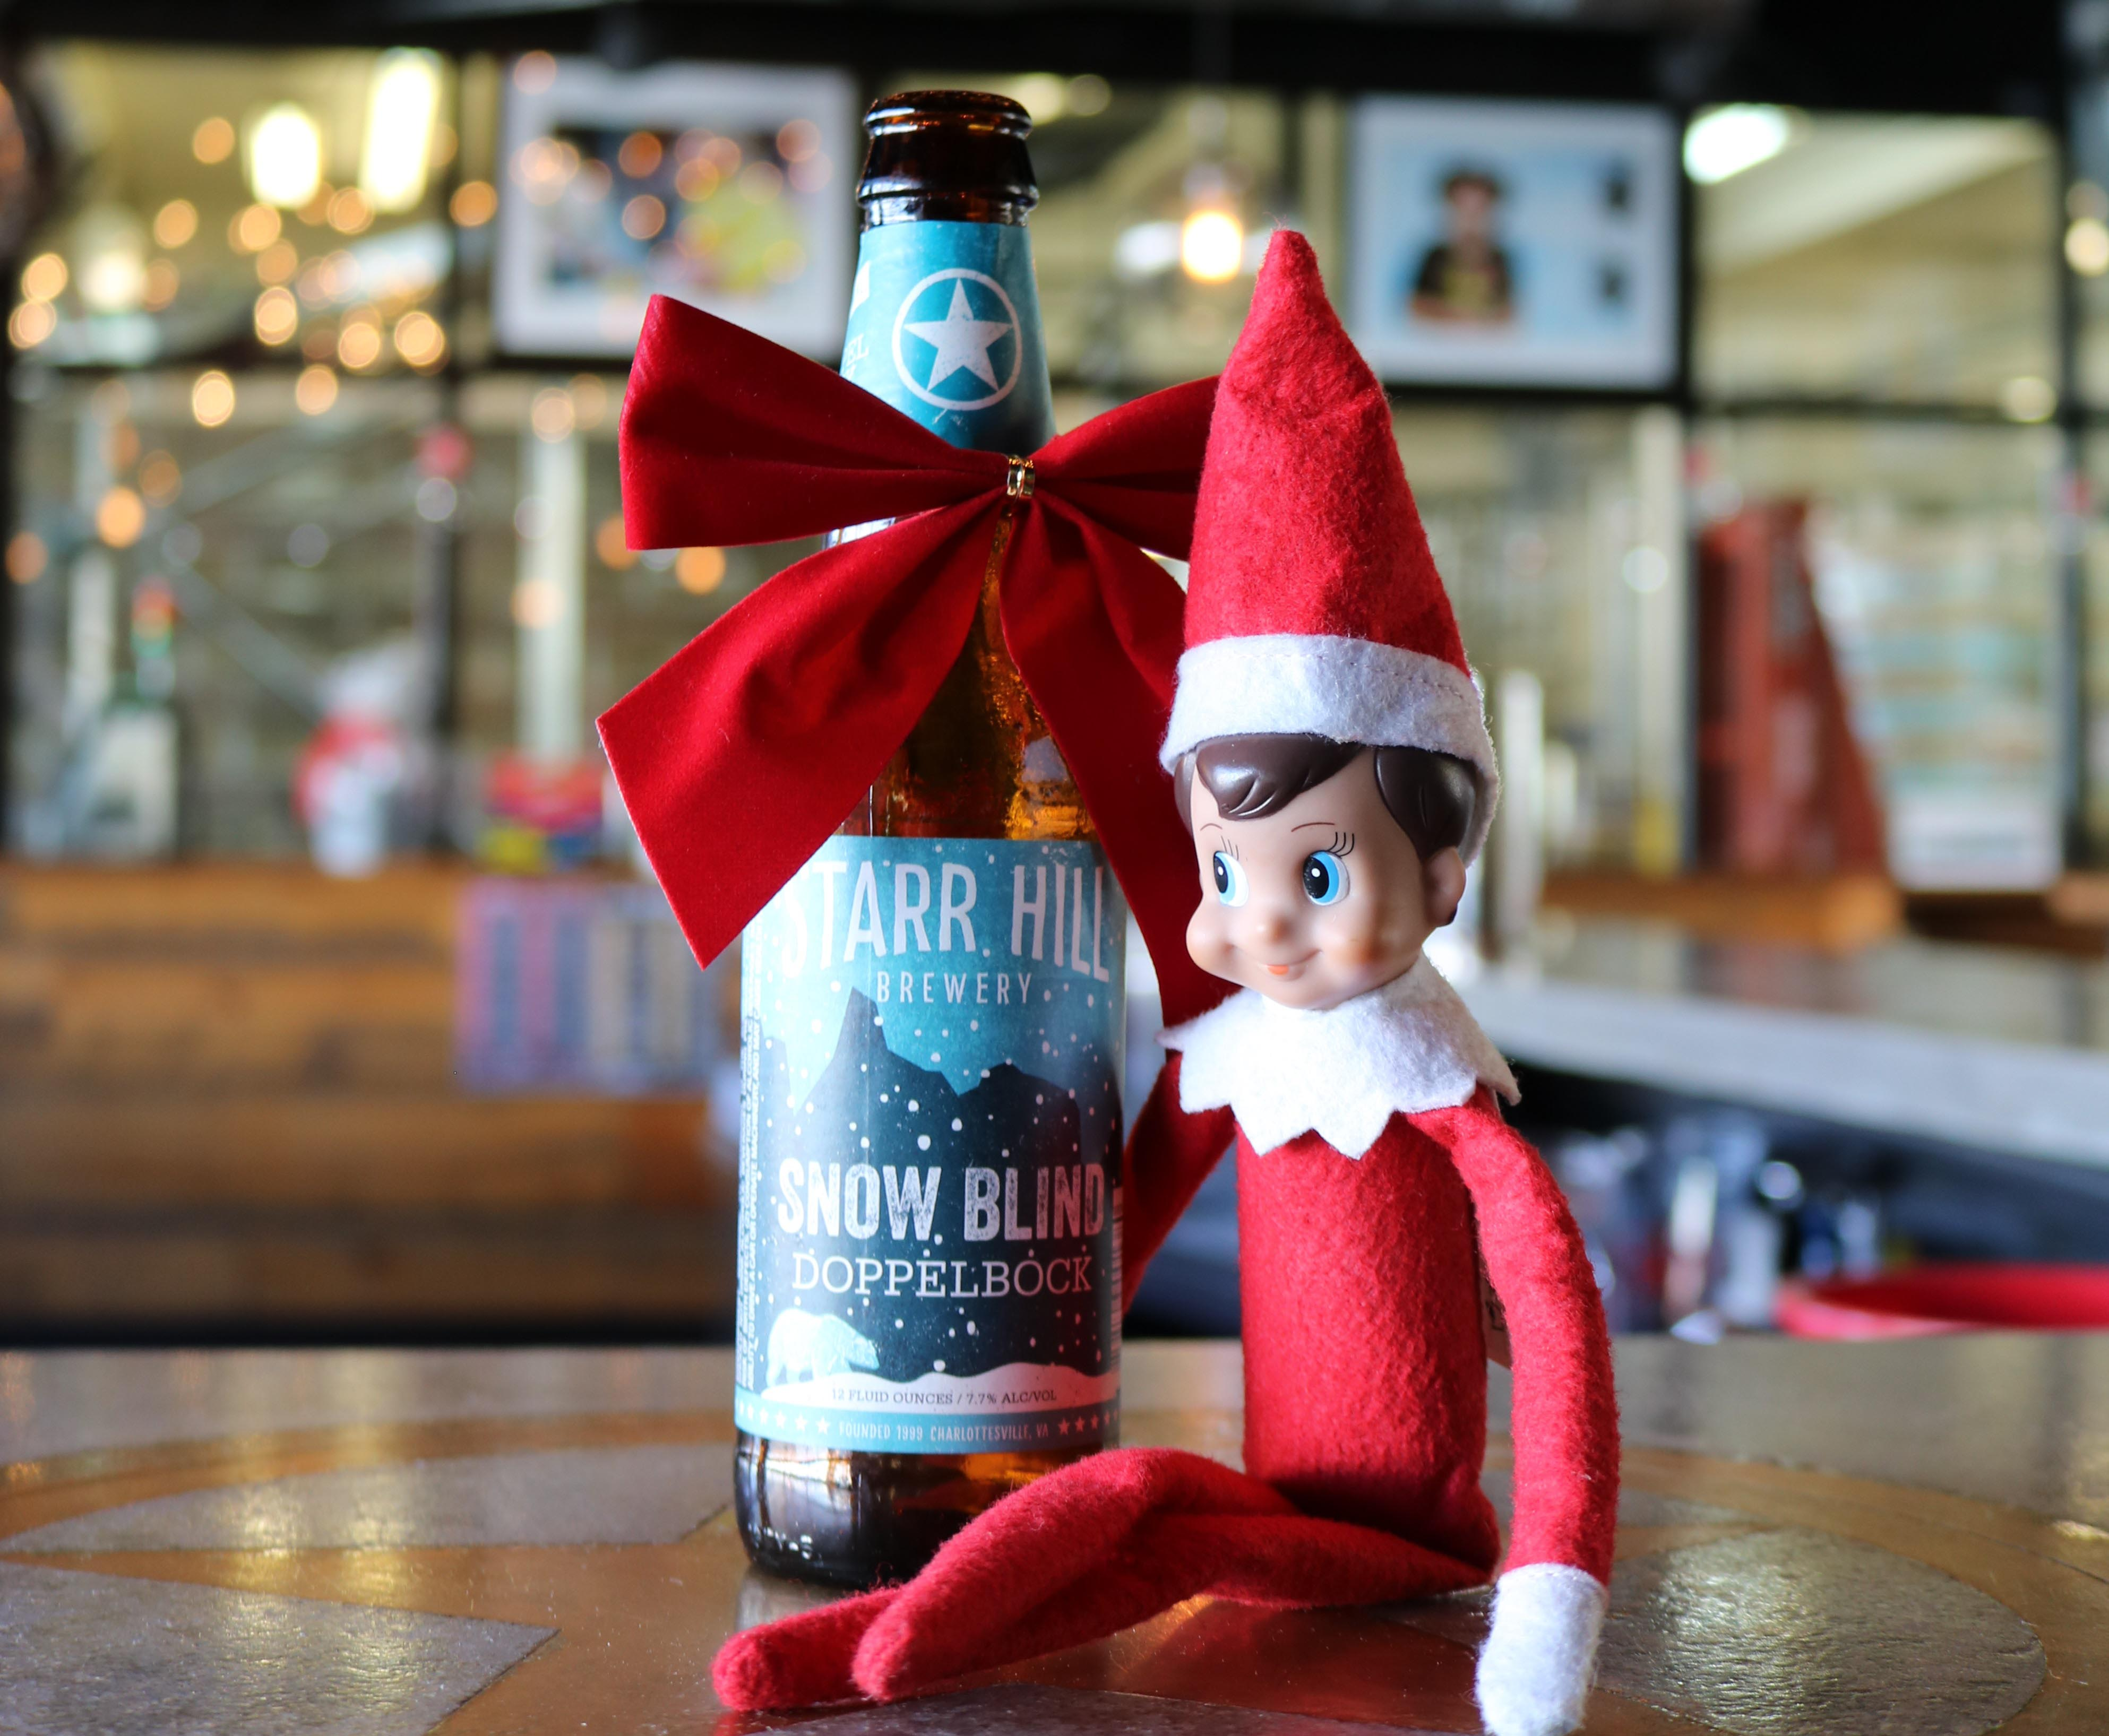 starr hill holiday beer